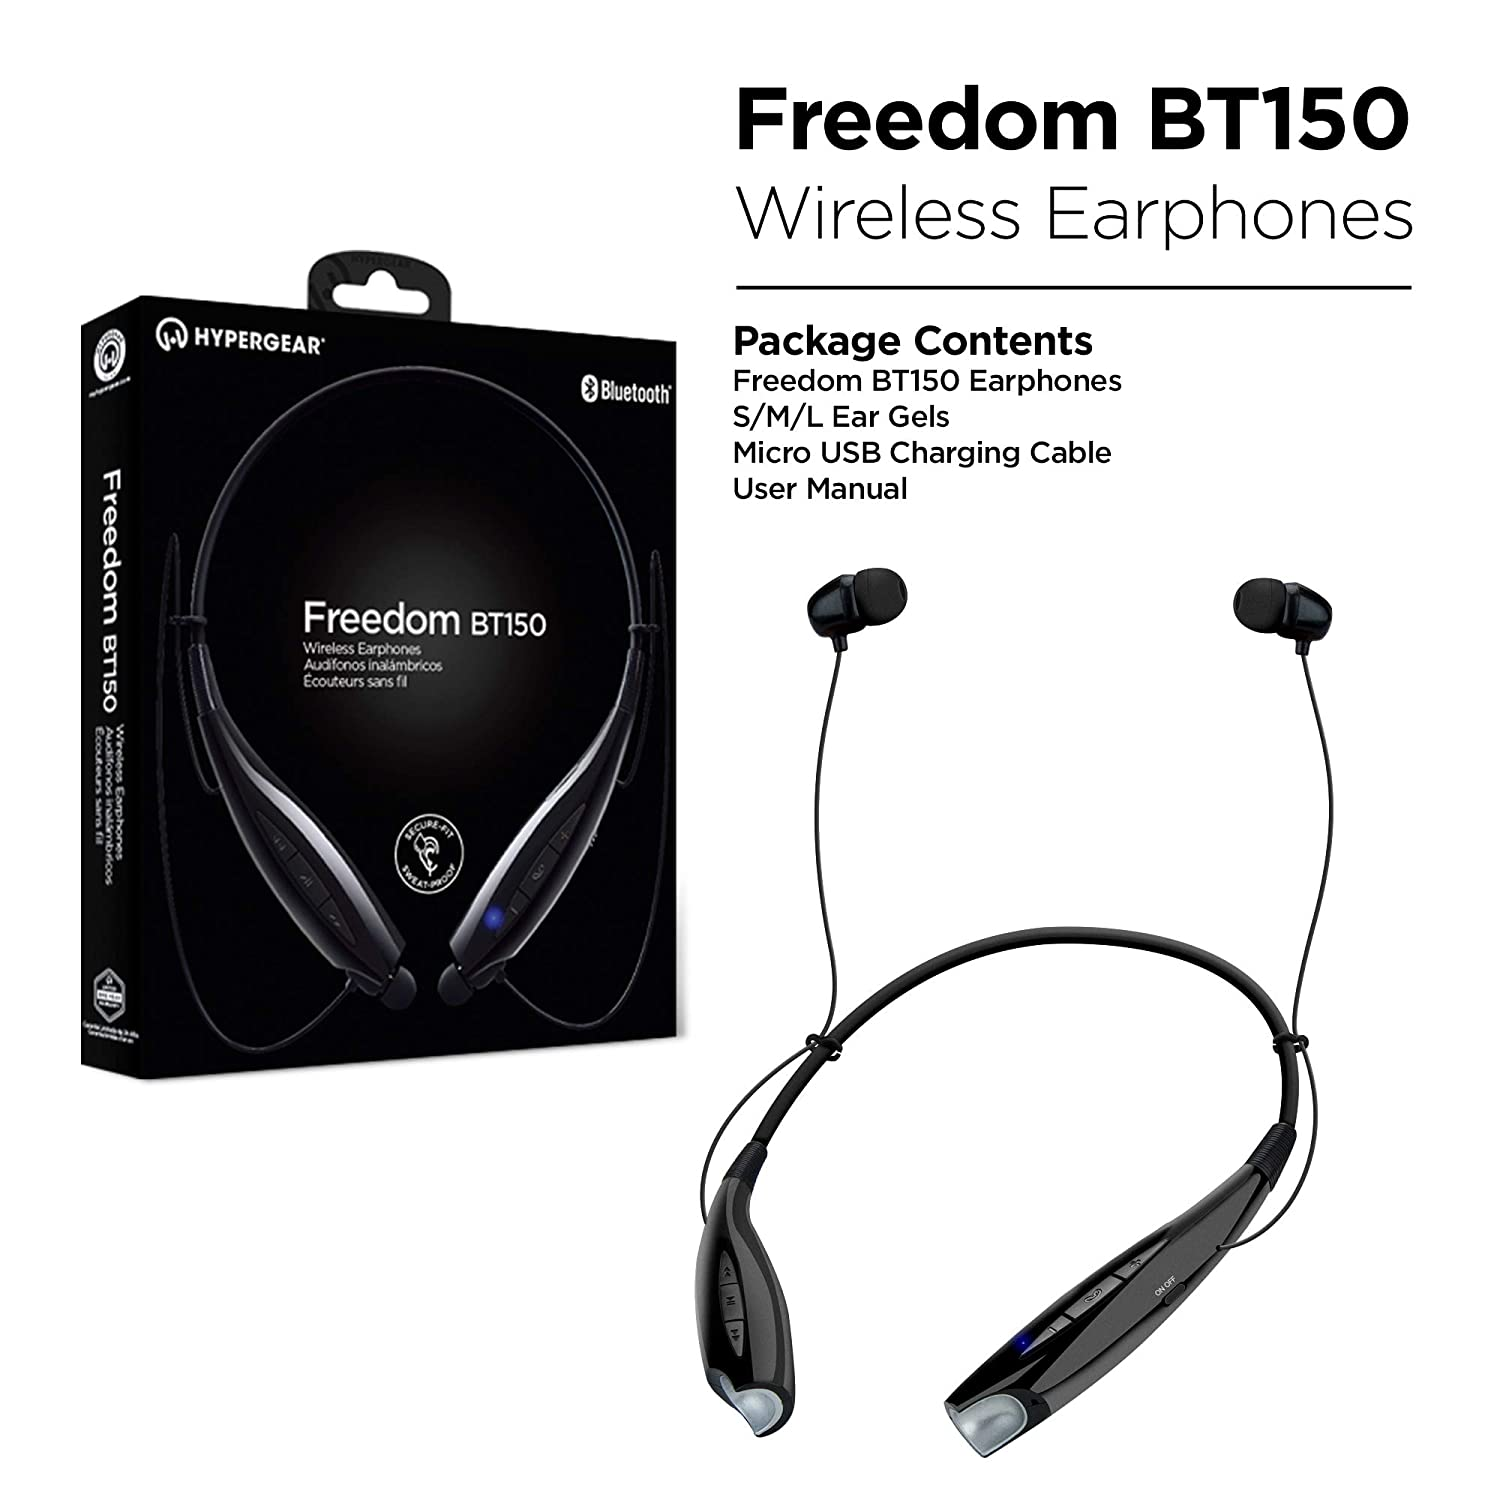 Amazon.com: HyperGear Freedom BT150 Wireless Around The Neck Earphones, Noise Cancelling Microphone, Hands-Free Music & Call Vibration from Any ...